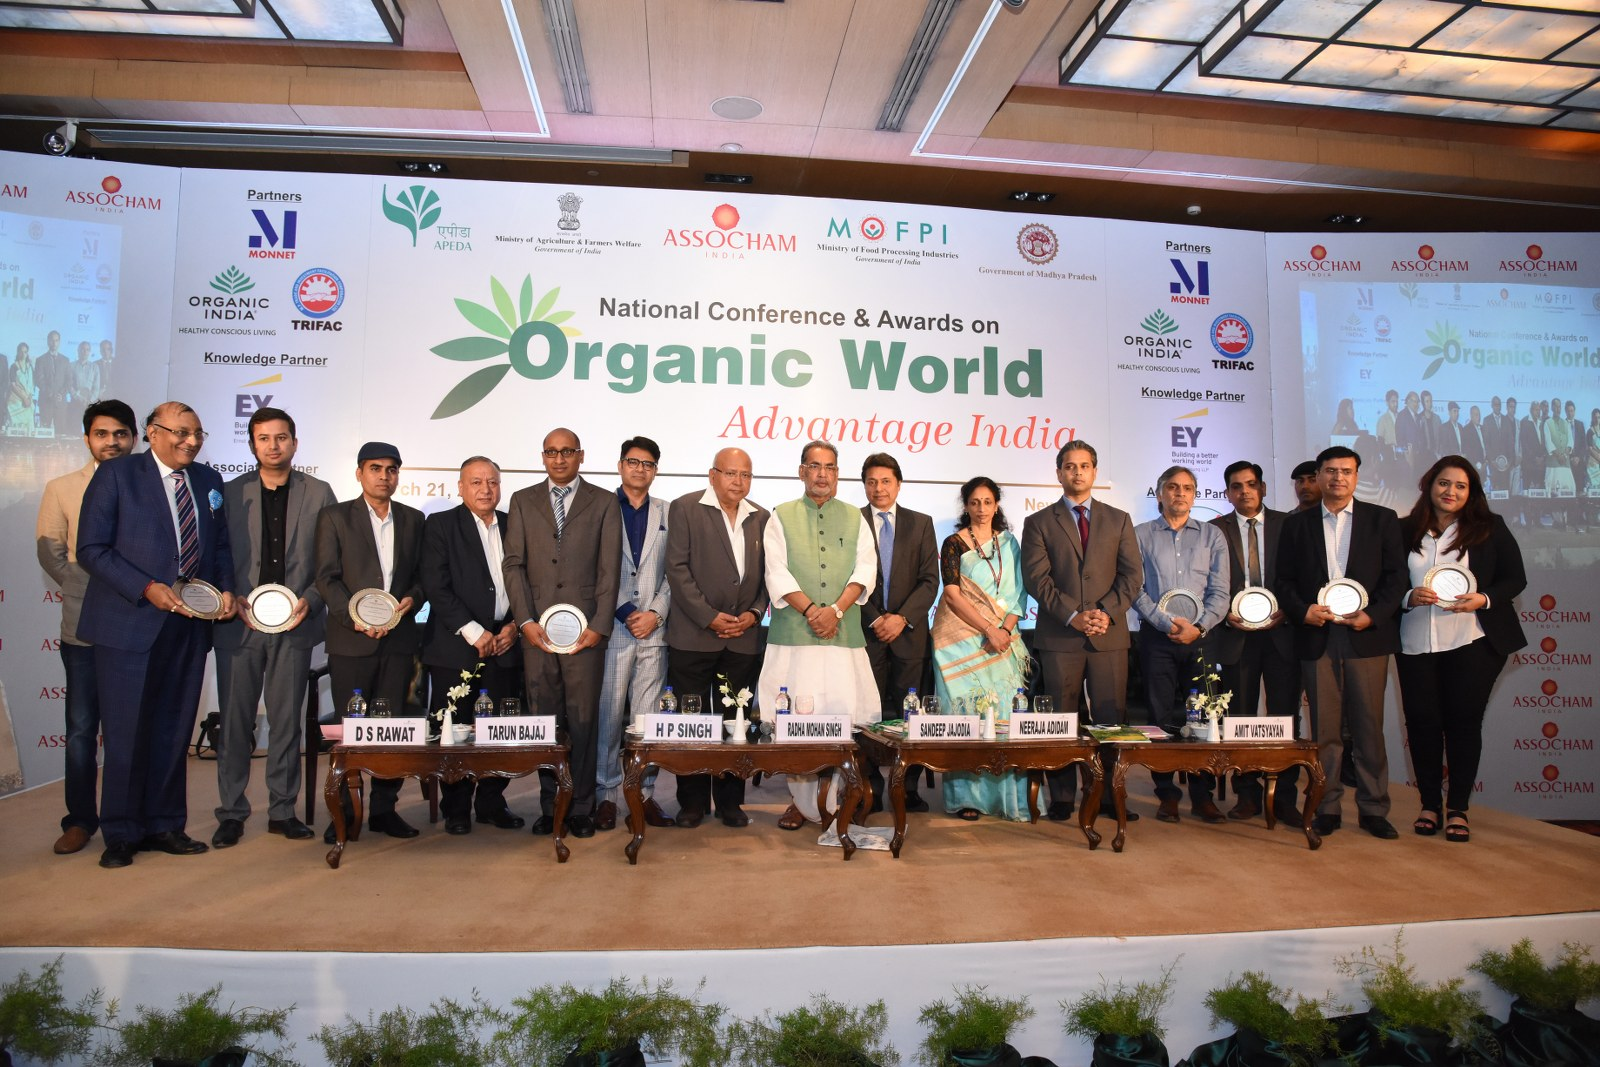 Organic World: Advantage India